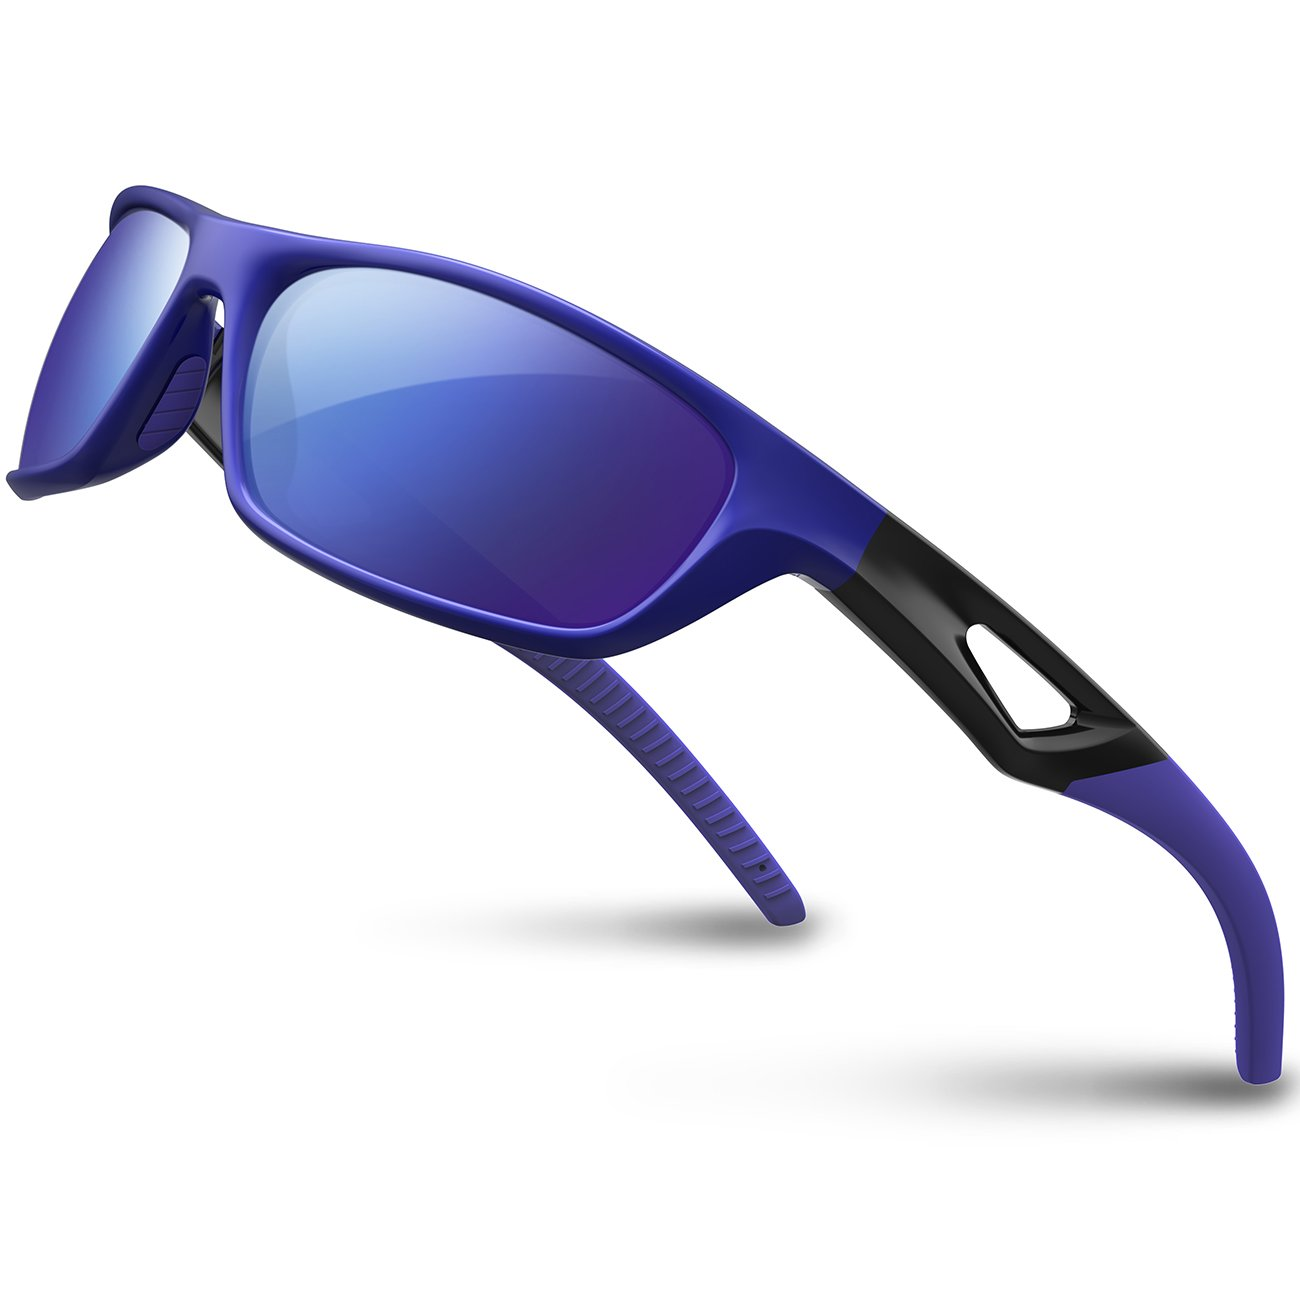 RIVBOS Polarized Sports Sunglasses Driving Sun Glasses Shades for Men Women Tr 90 Unbreakable Frame for Cycling Baseball Run Rb831 (Blue Mirror Lens)